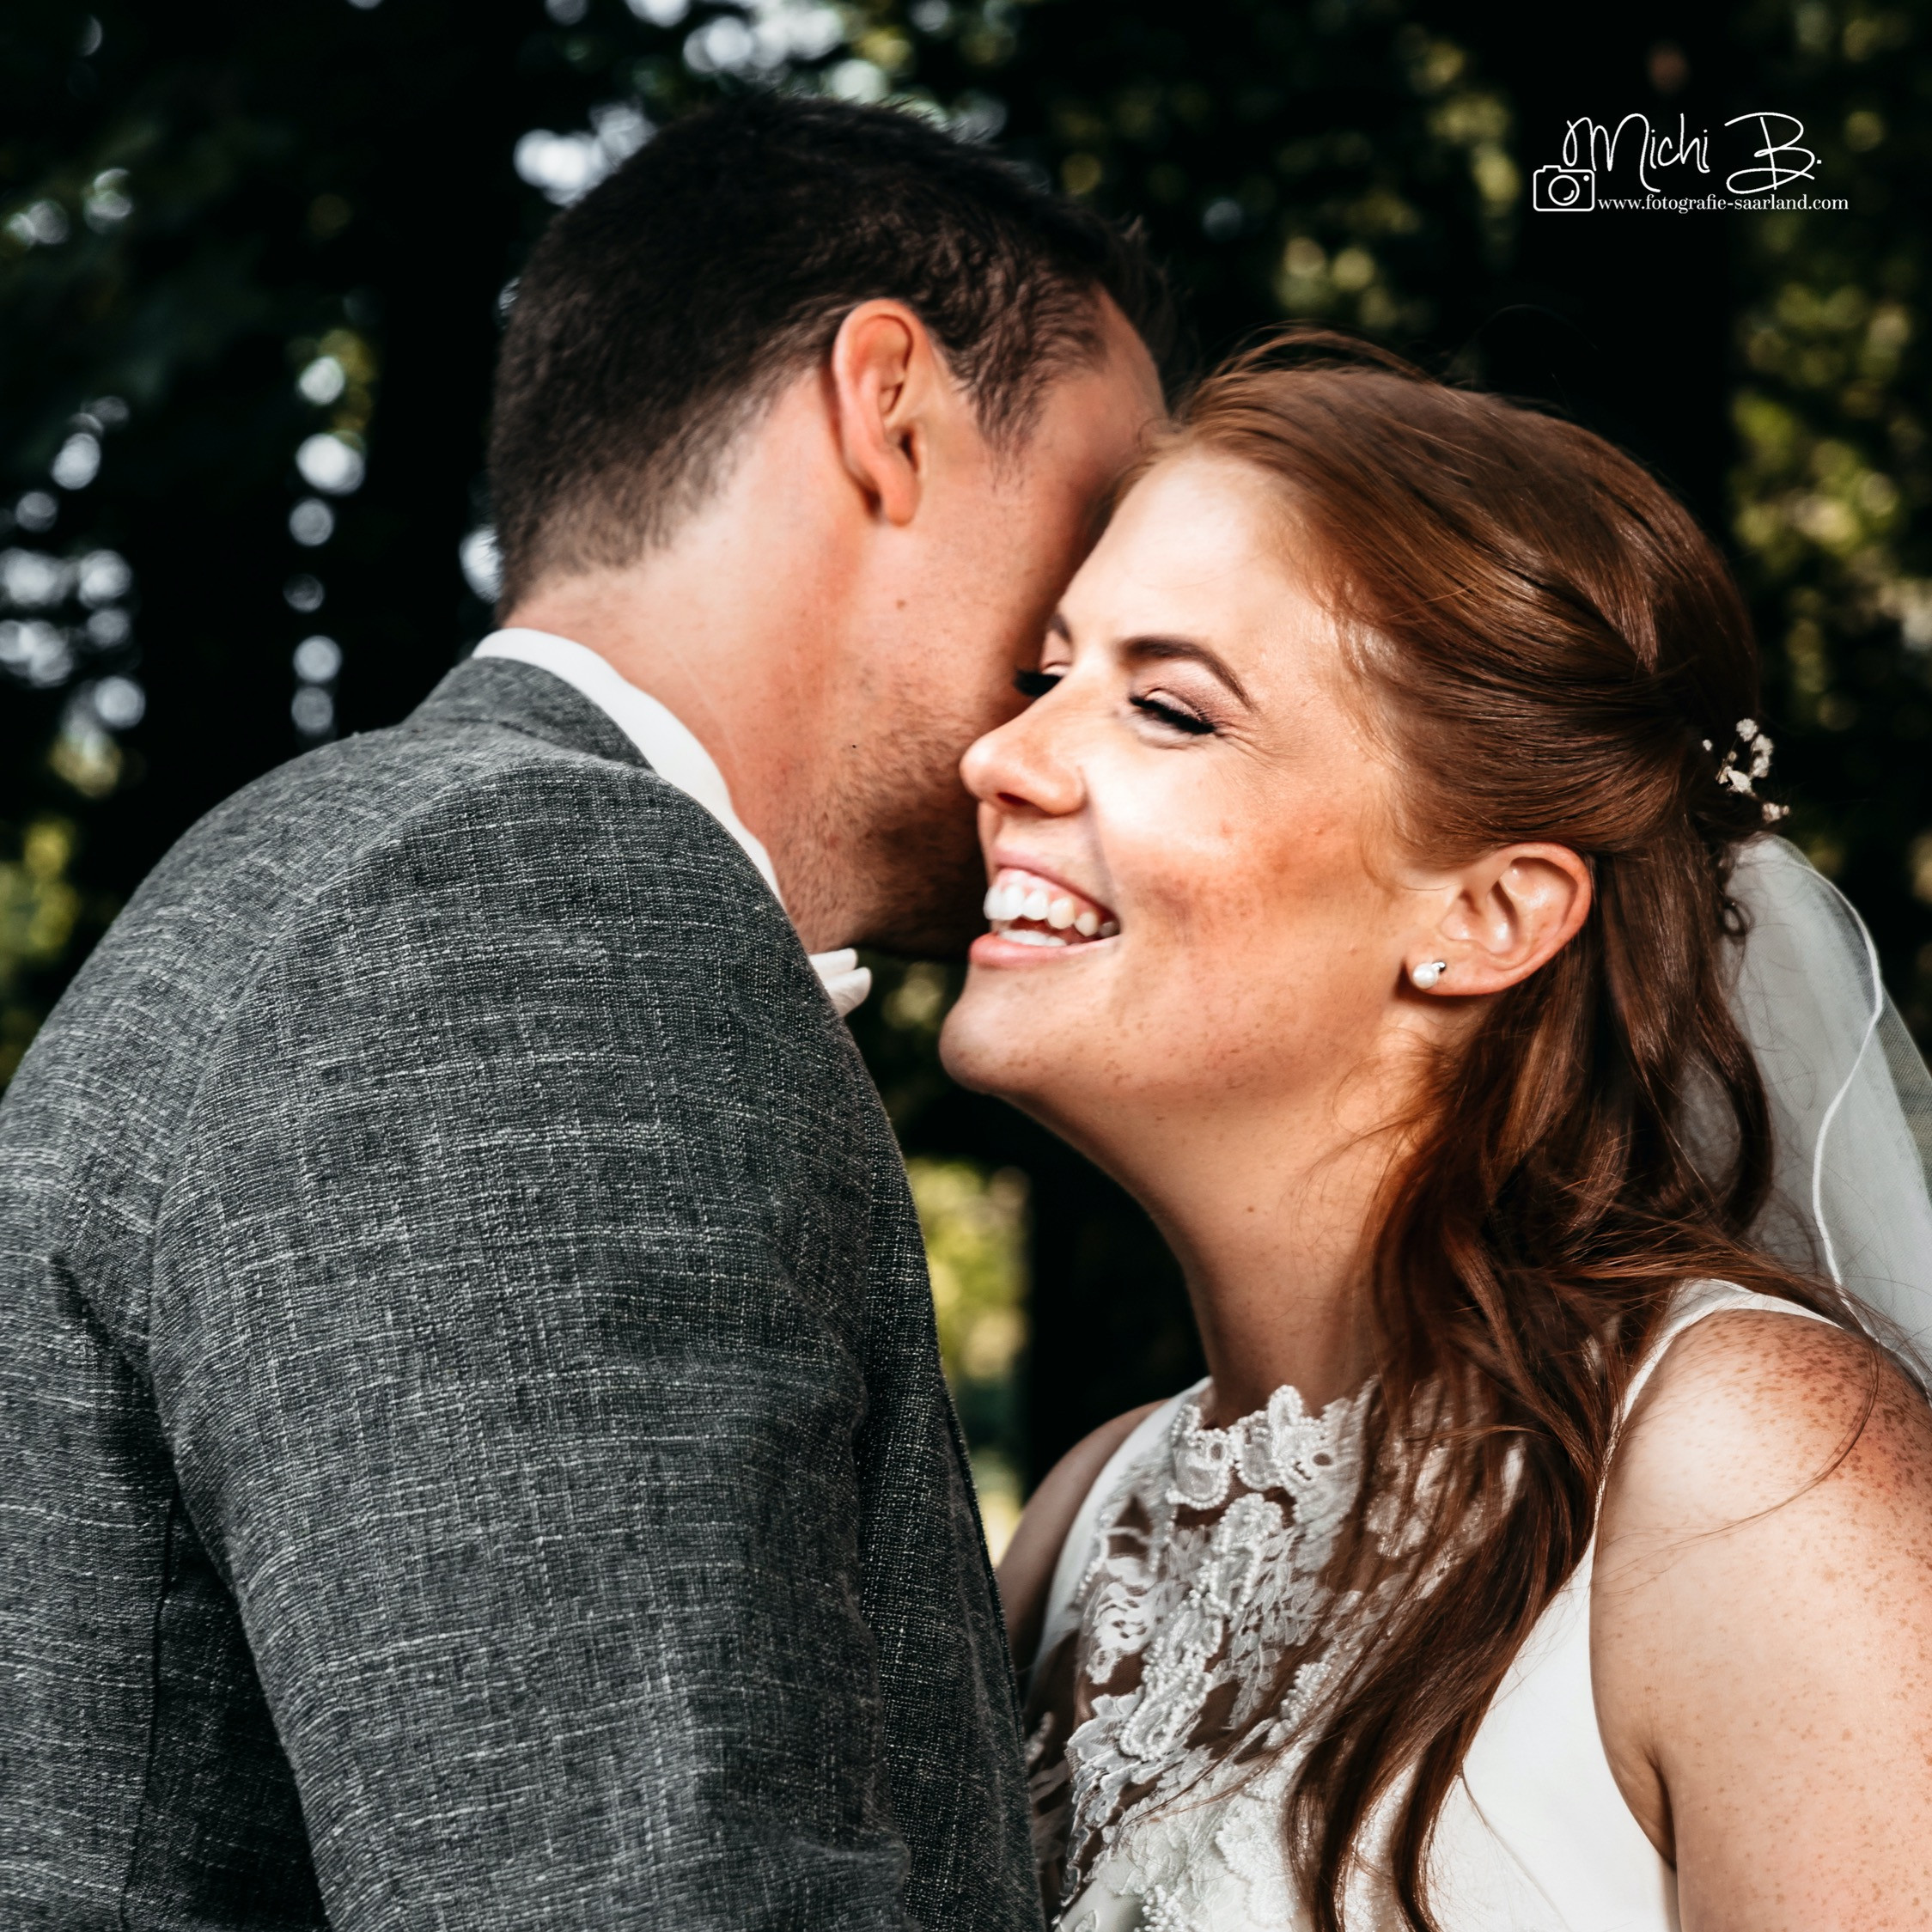 After Wedding Shooting Bronze ab 395 €